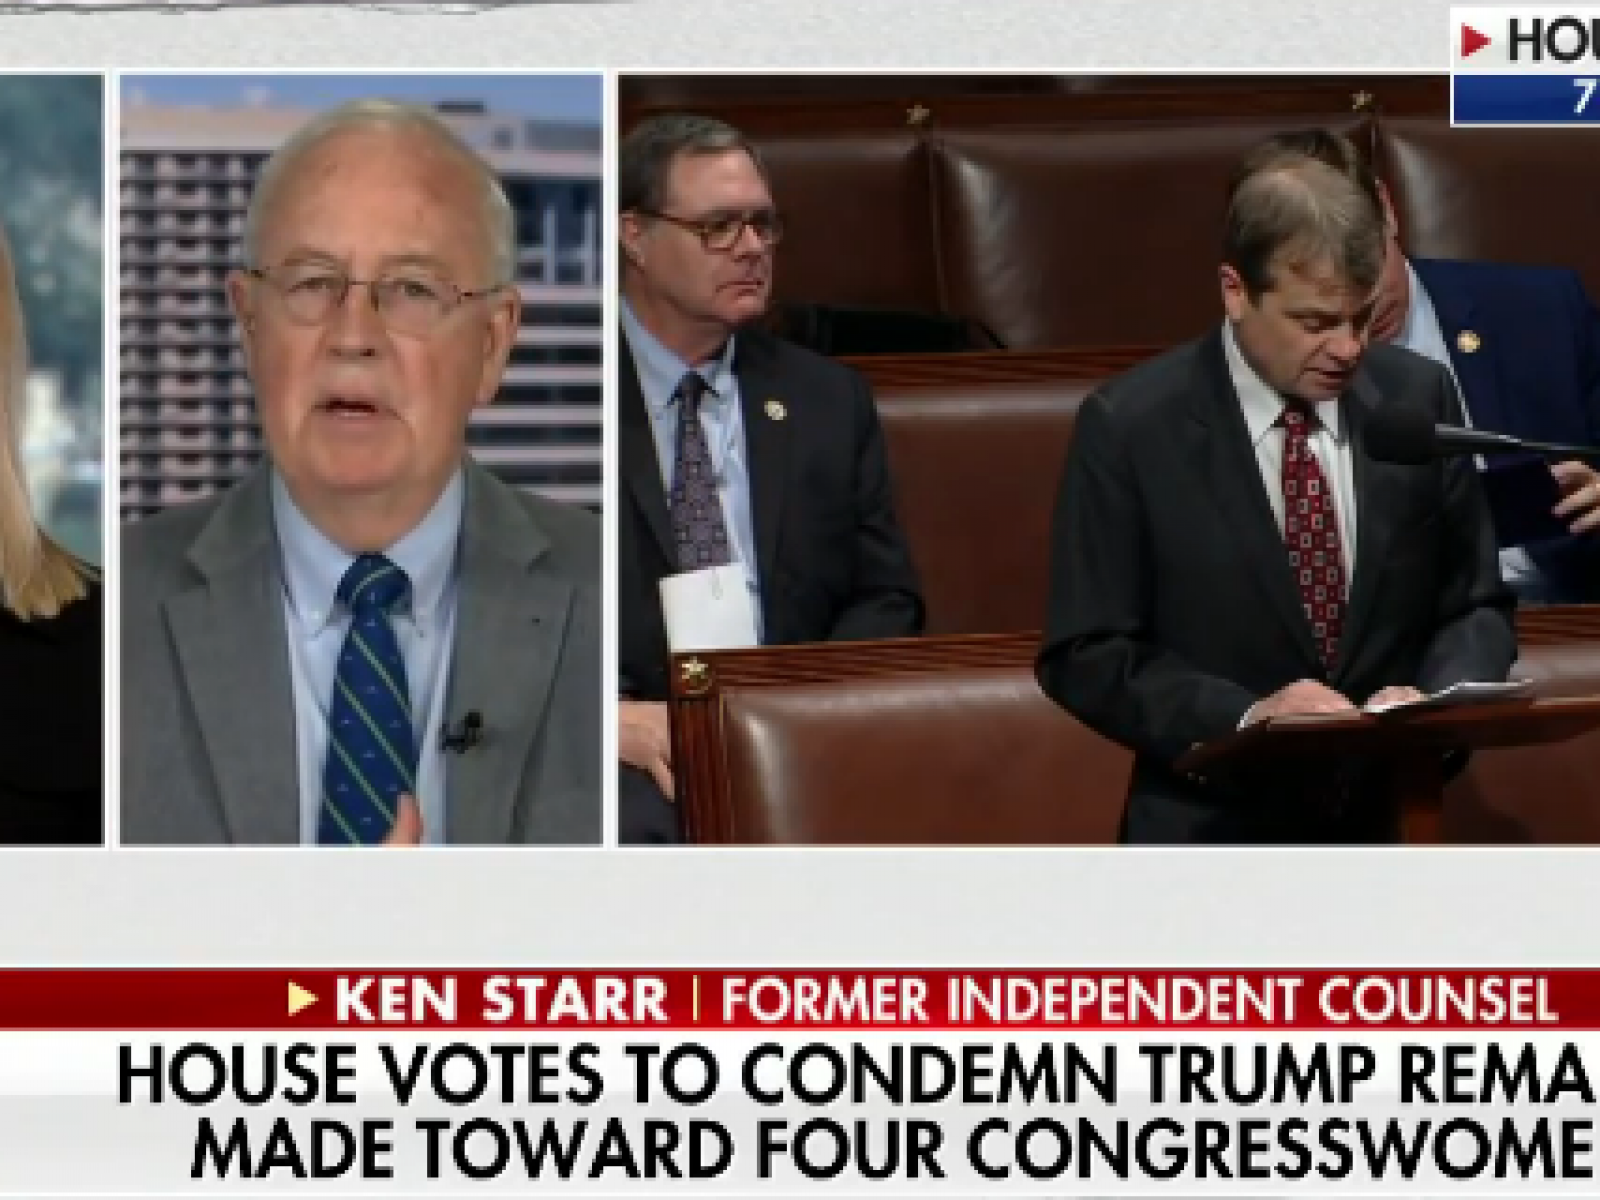 Ken Starr Says Trump Racist Comments Not An Impeachable Offense